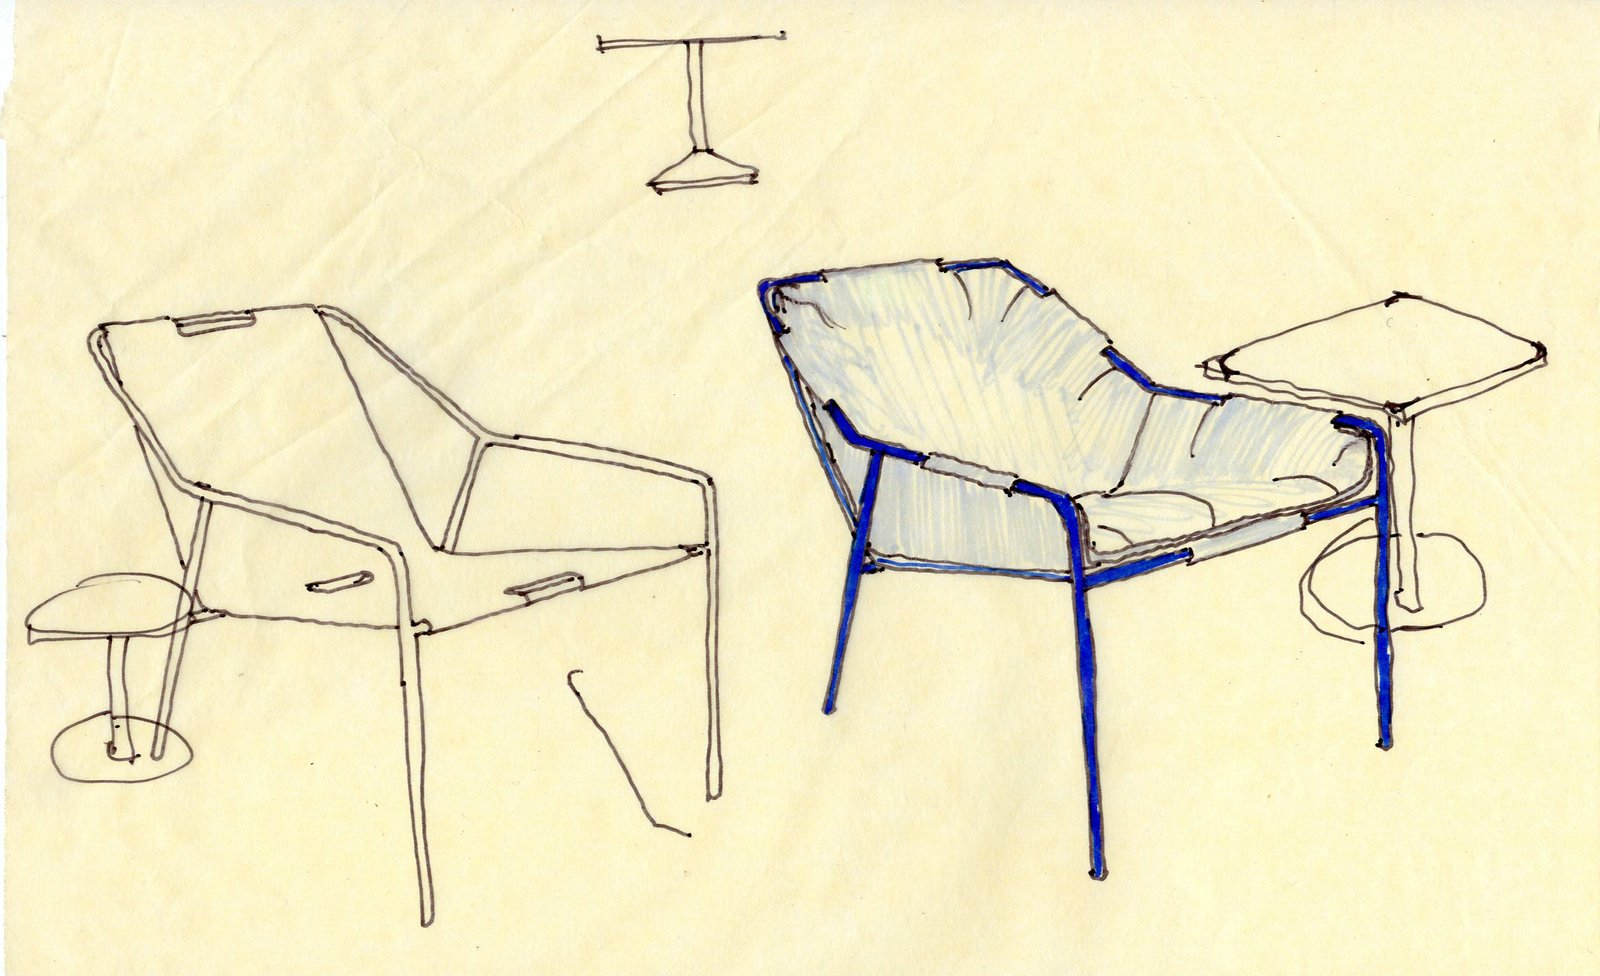 The outdoor seating line is one of their favorite parts of the collection. Nick pointed out that Chris penned the designs himself and that the final results are amazingly comfortable—especially for being so affordable. They took posture into consideration when designing the chairs, including the Outdoor Lounge Chairs, which are shown in a sketch here—with and without cushions.